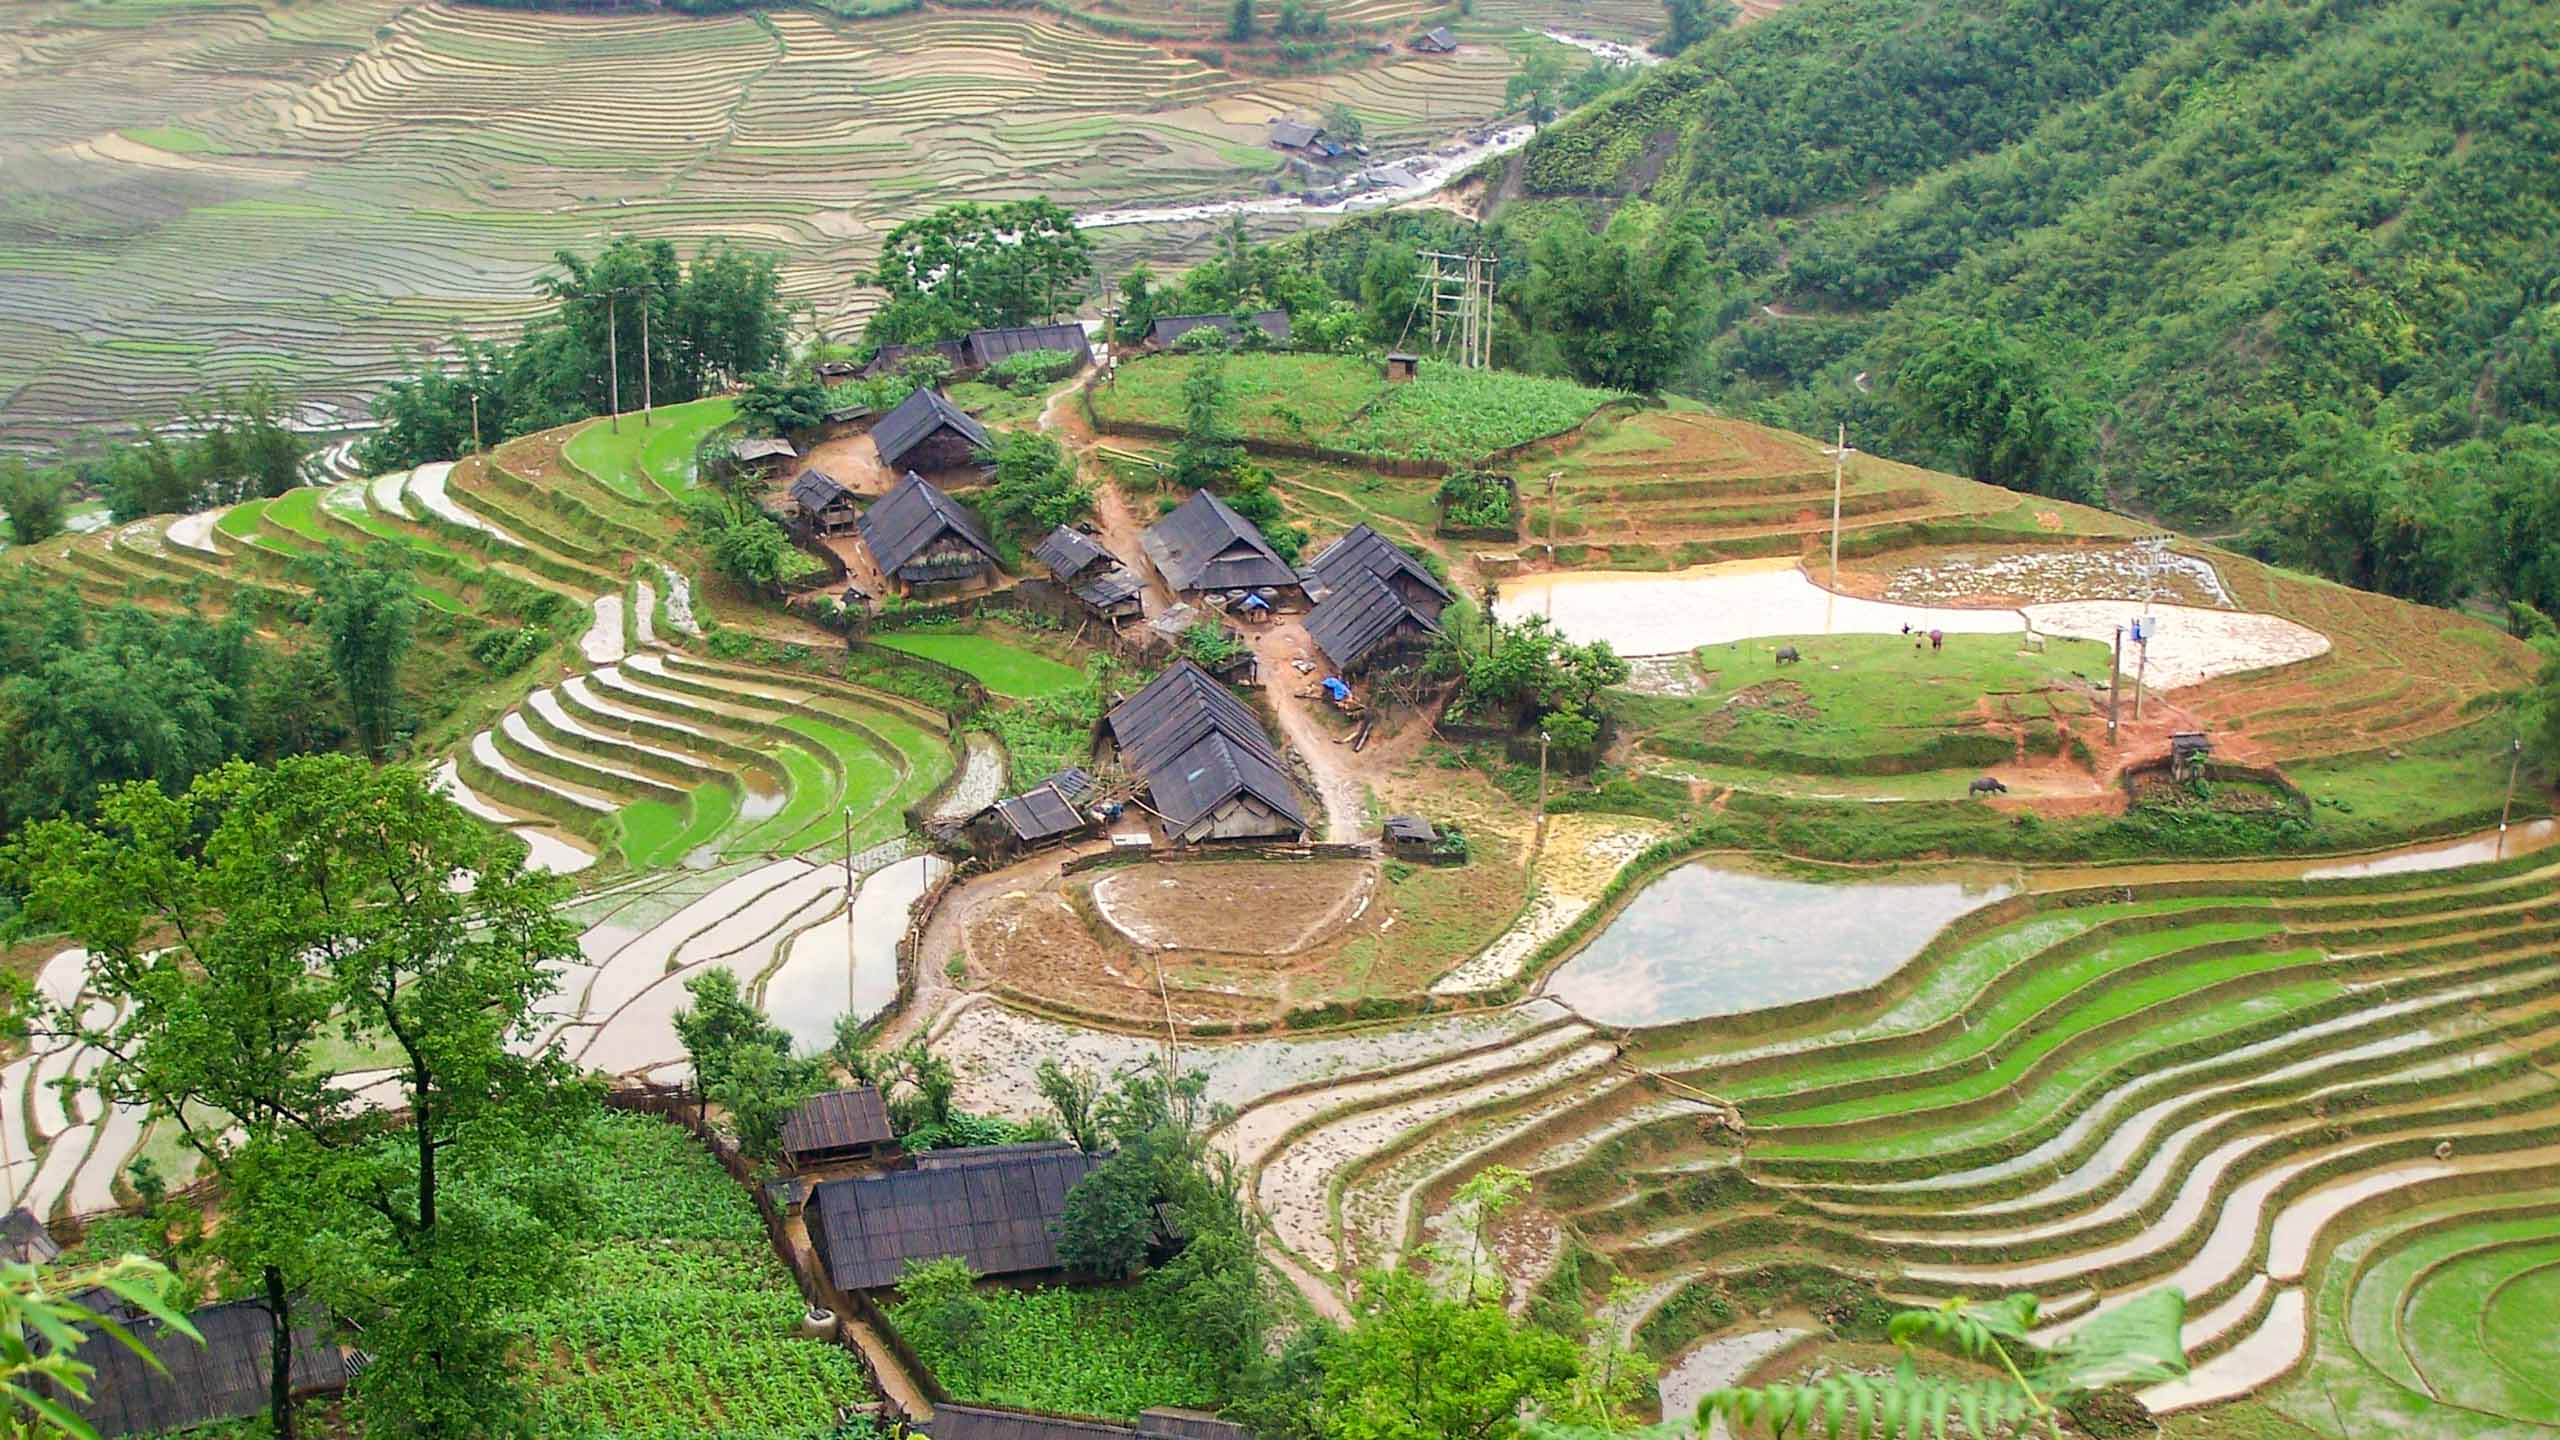 Village on a hill in Vietnam